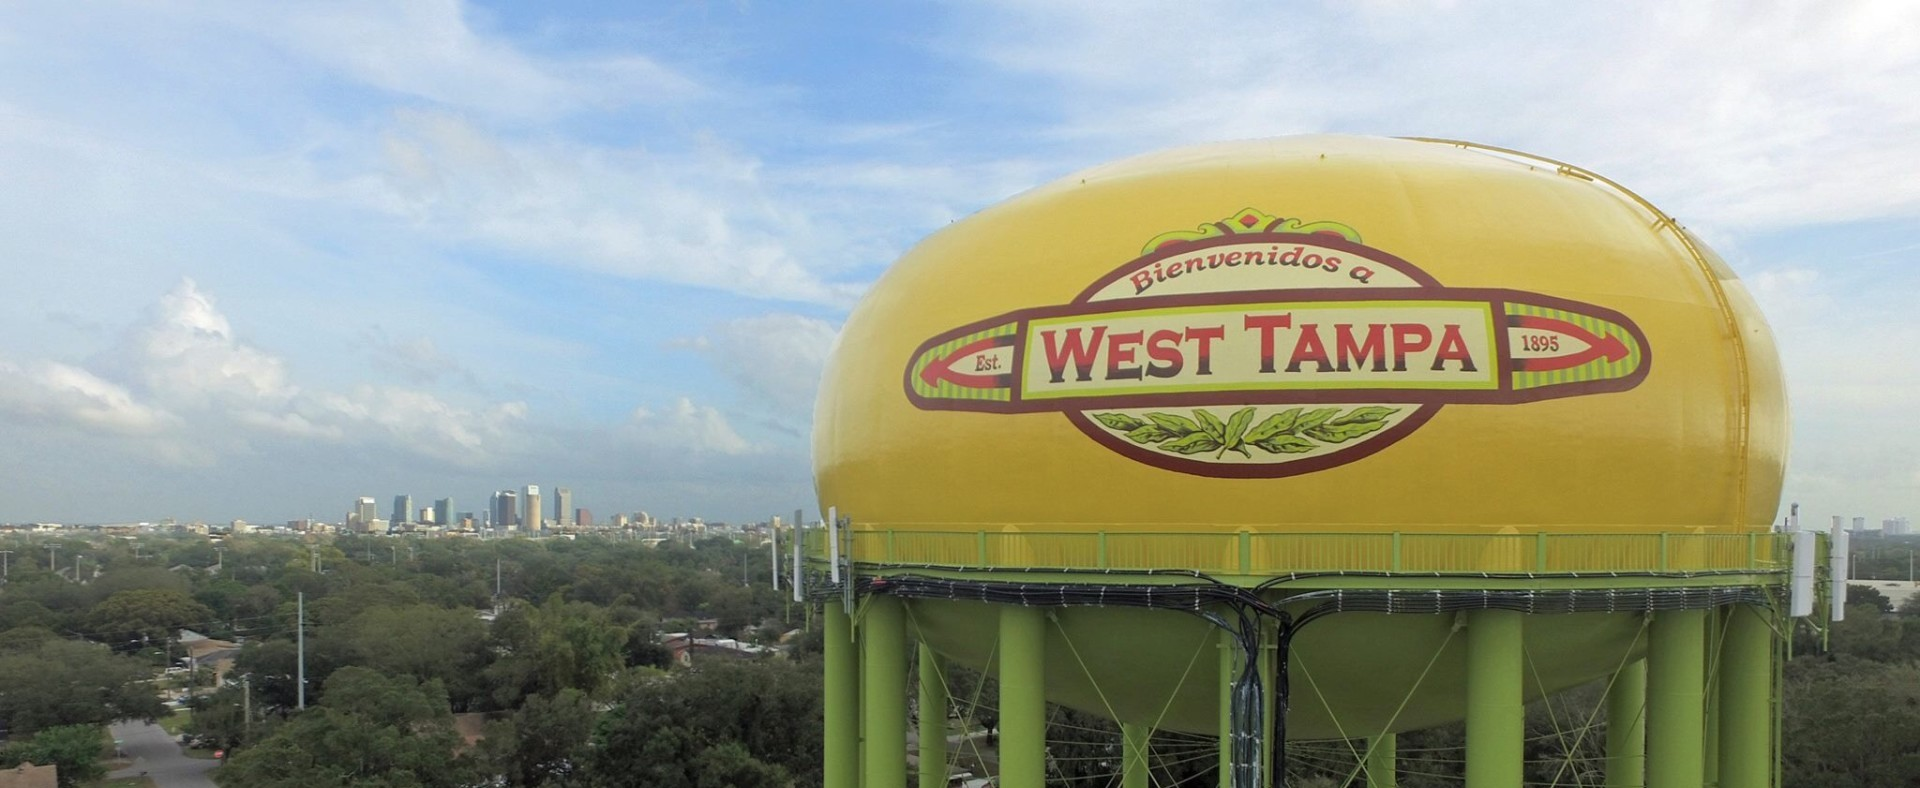 WT-watertower-w1920-crop.jpg